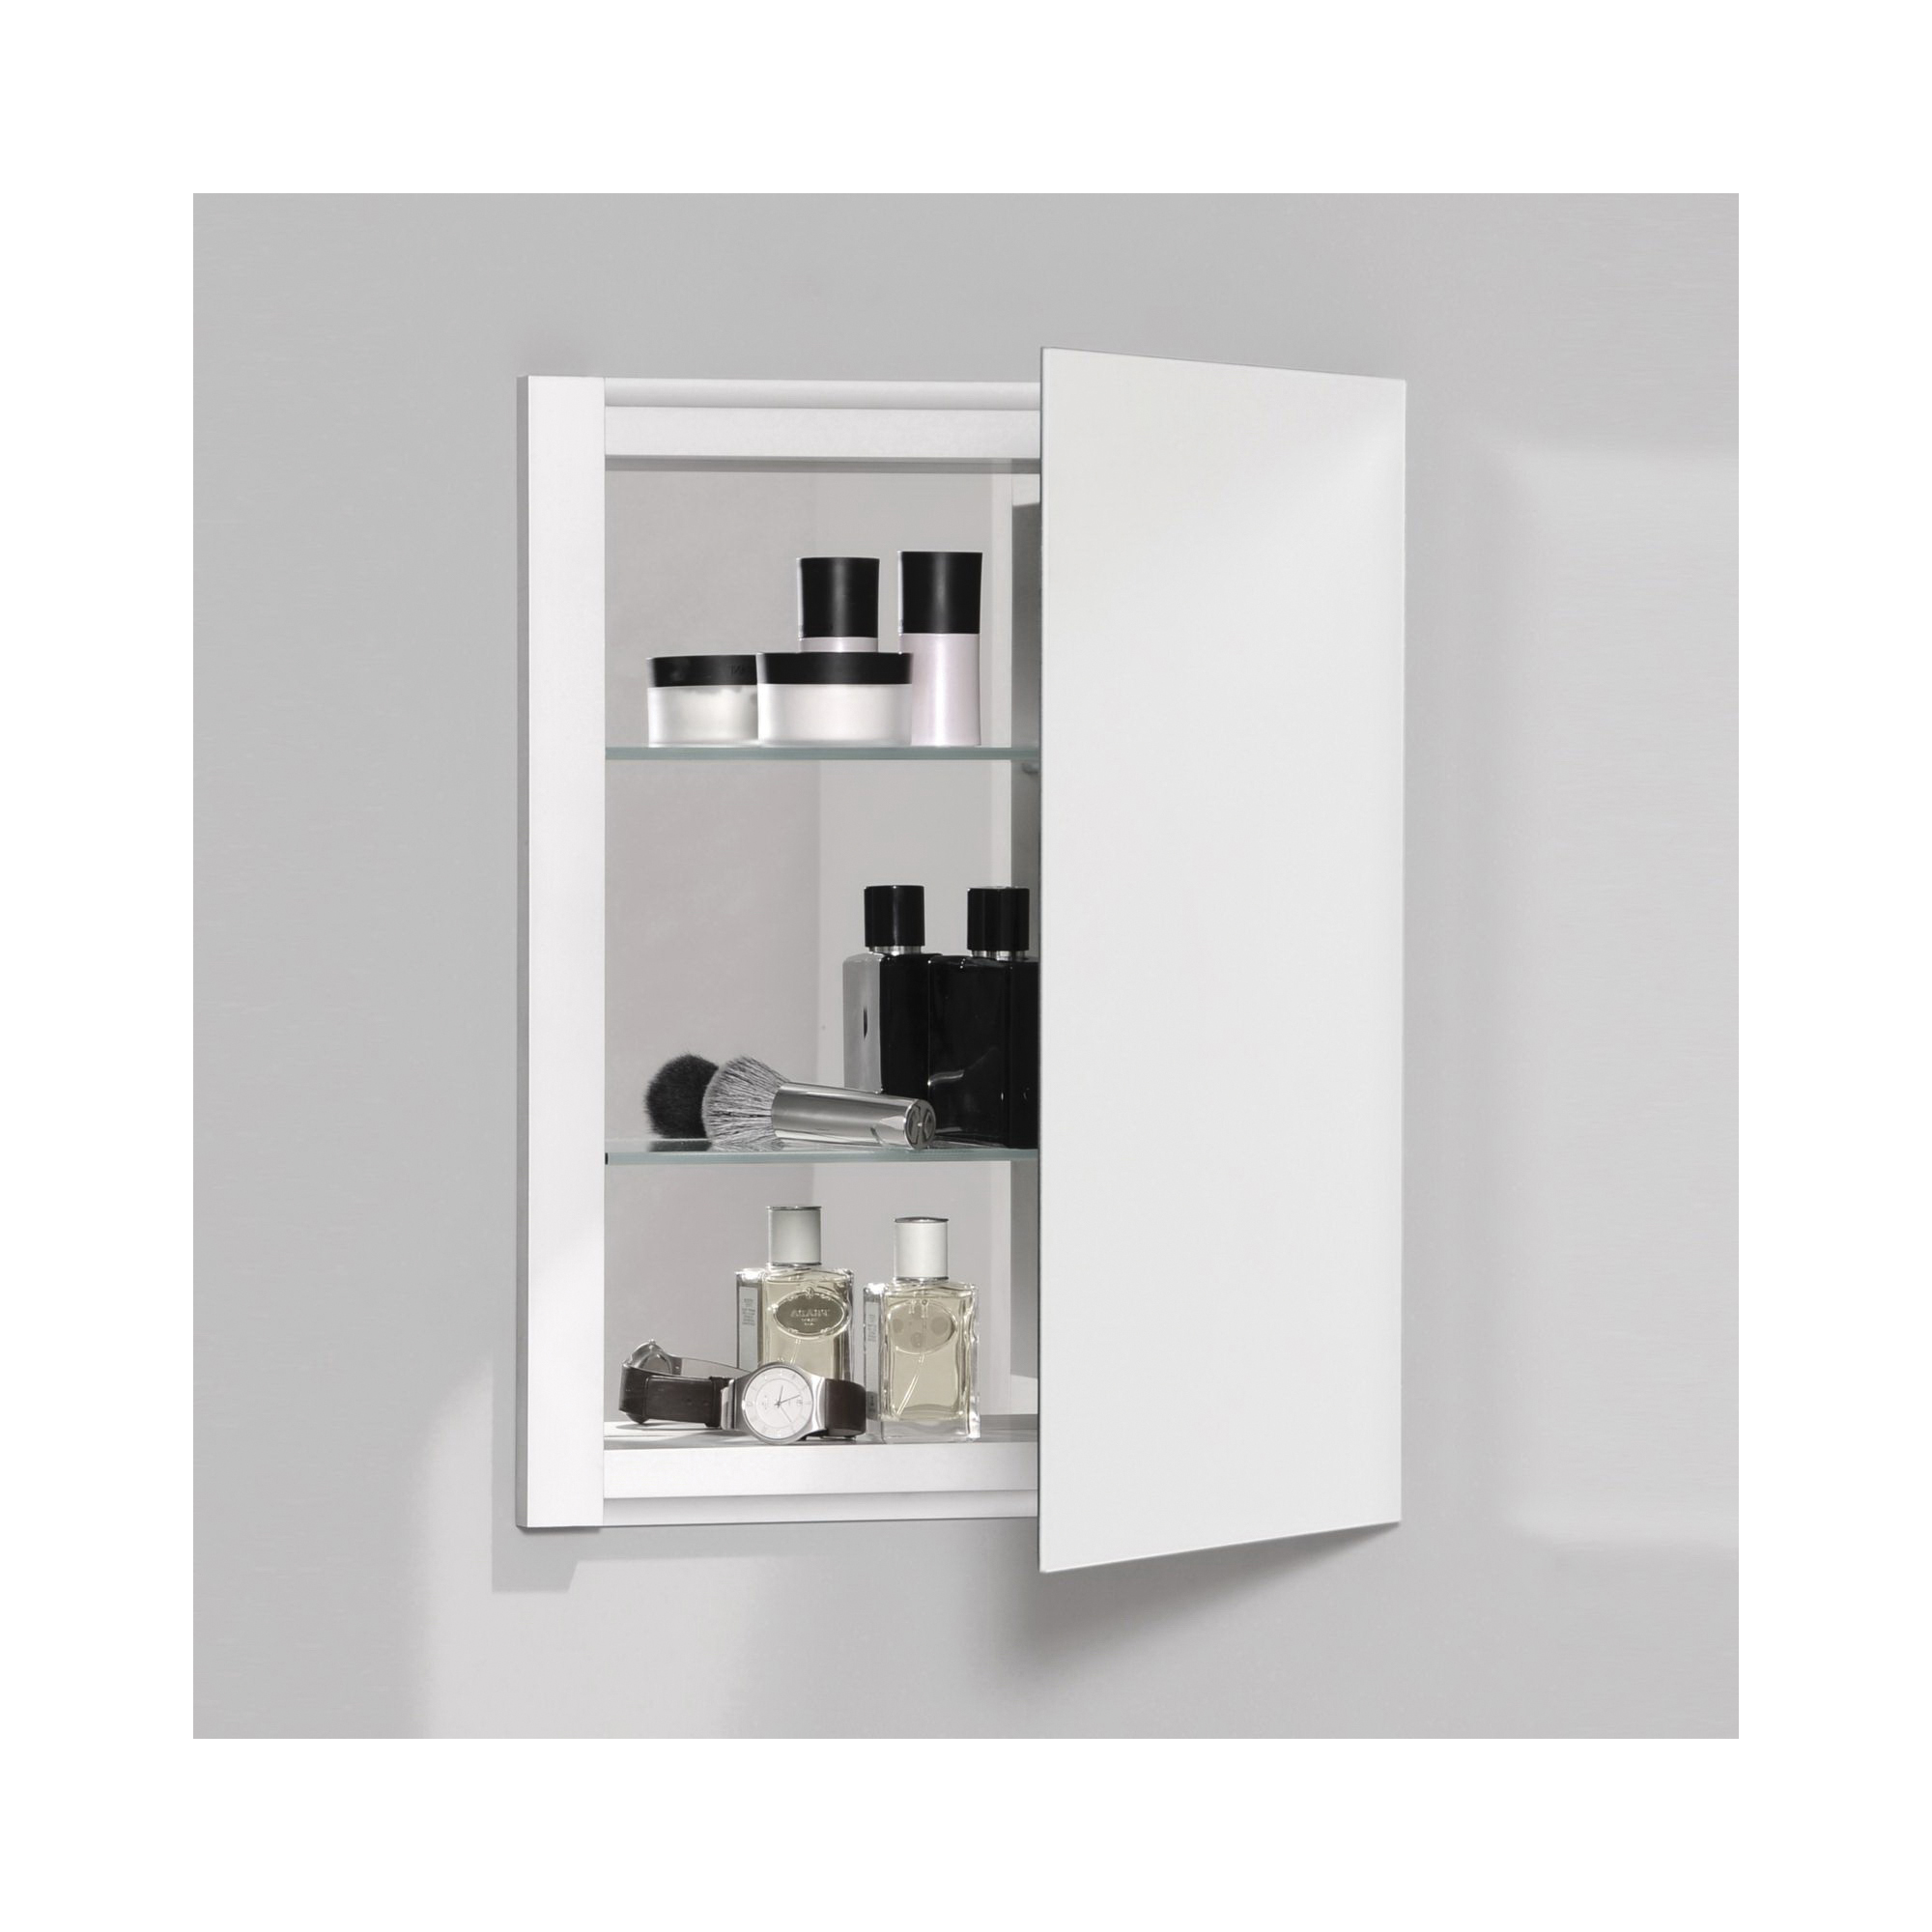 Robern® RC1626D4FB1 Single Door Medicine Cabinet With Interior Beveled Edge Front Mirror, R3 Series, 16 in OAW x 20 in OAH, Aluminum, Satin Anodized